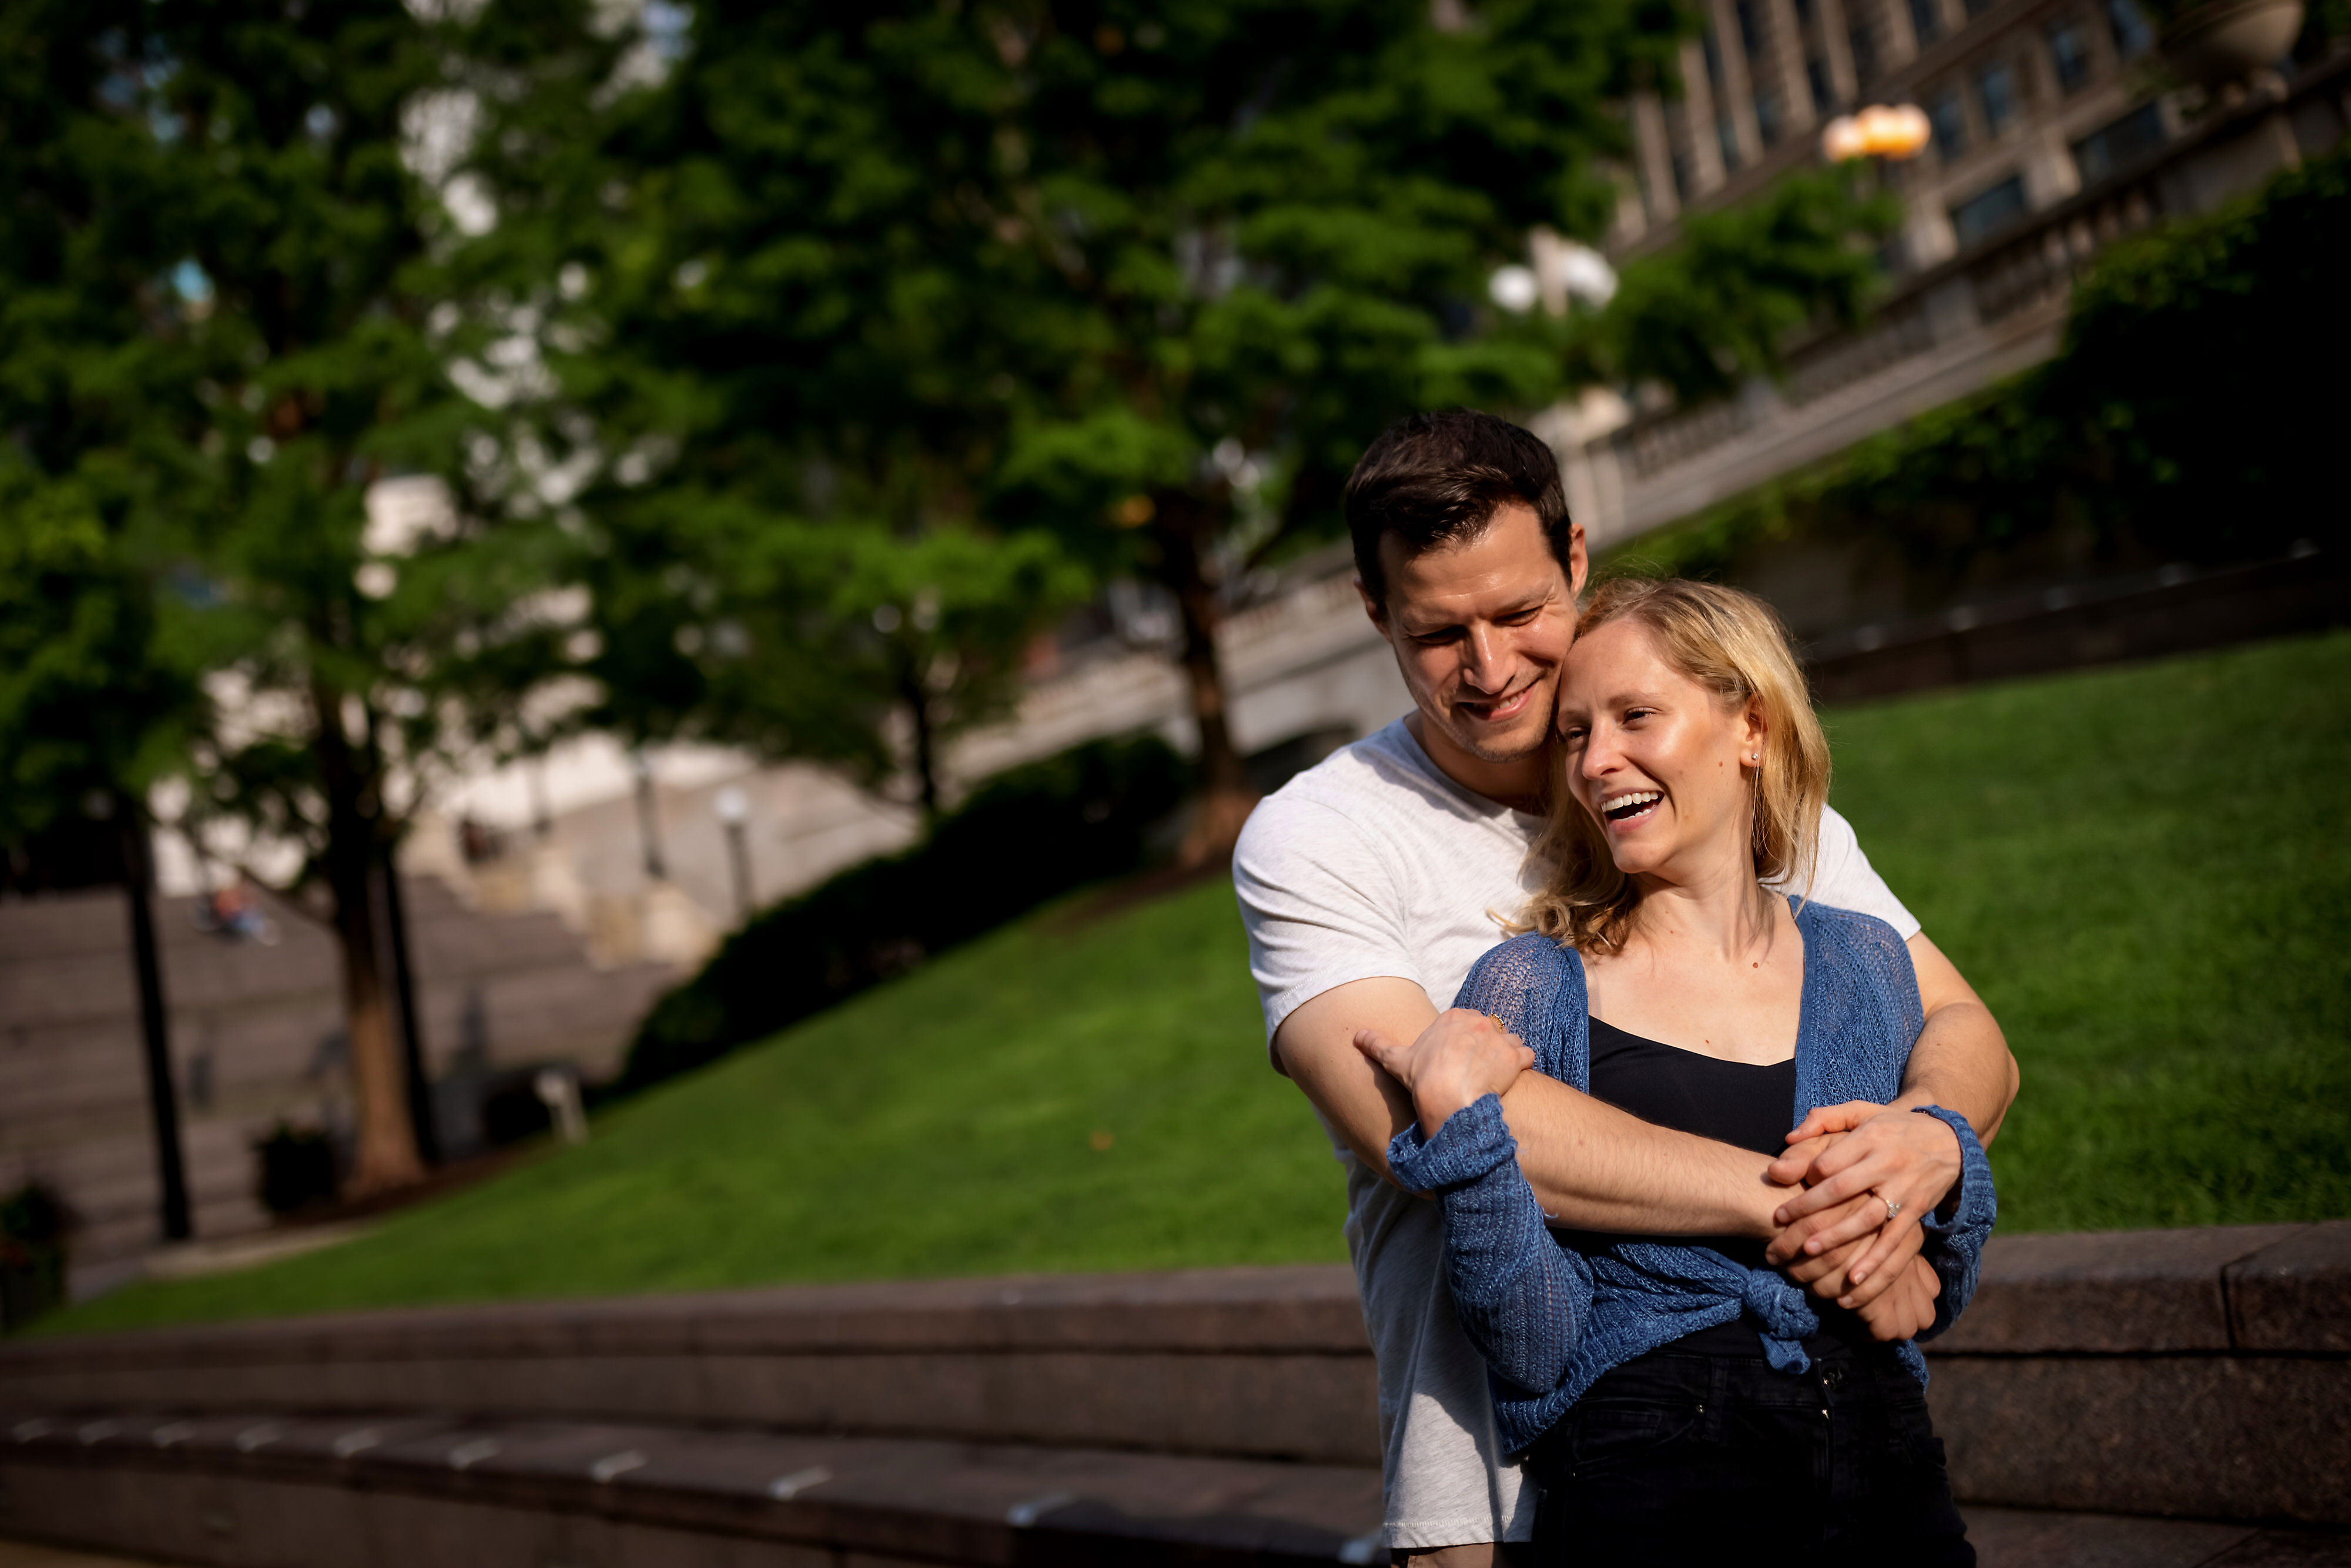 Couple poses for engagement pictures with trees and grassy hill in the background on the Chicago Riverwalk